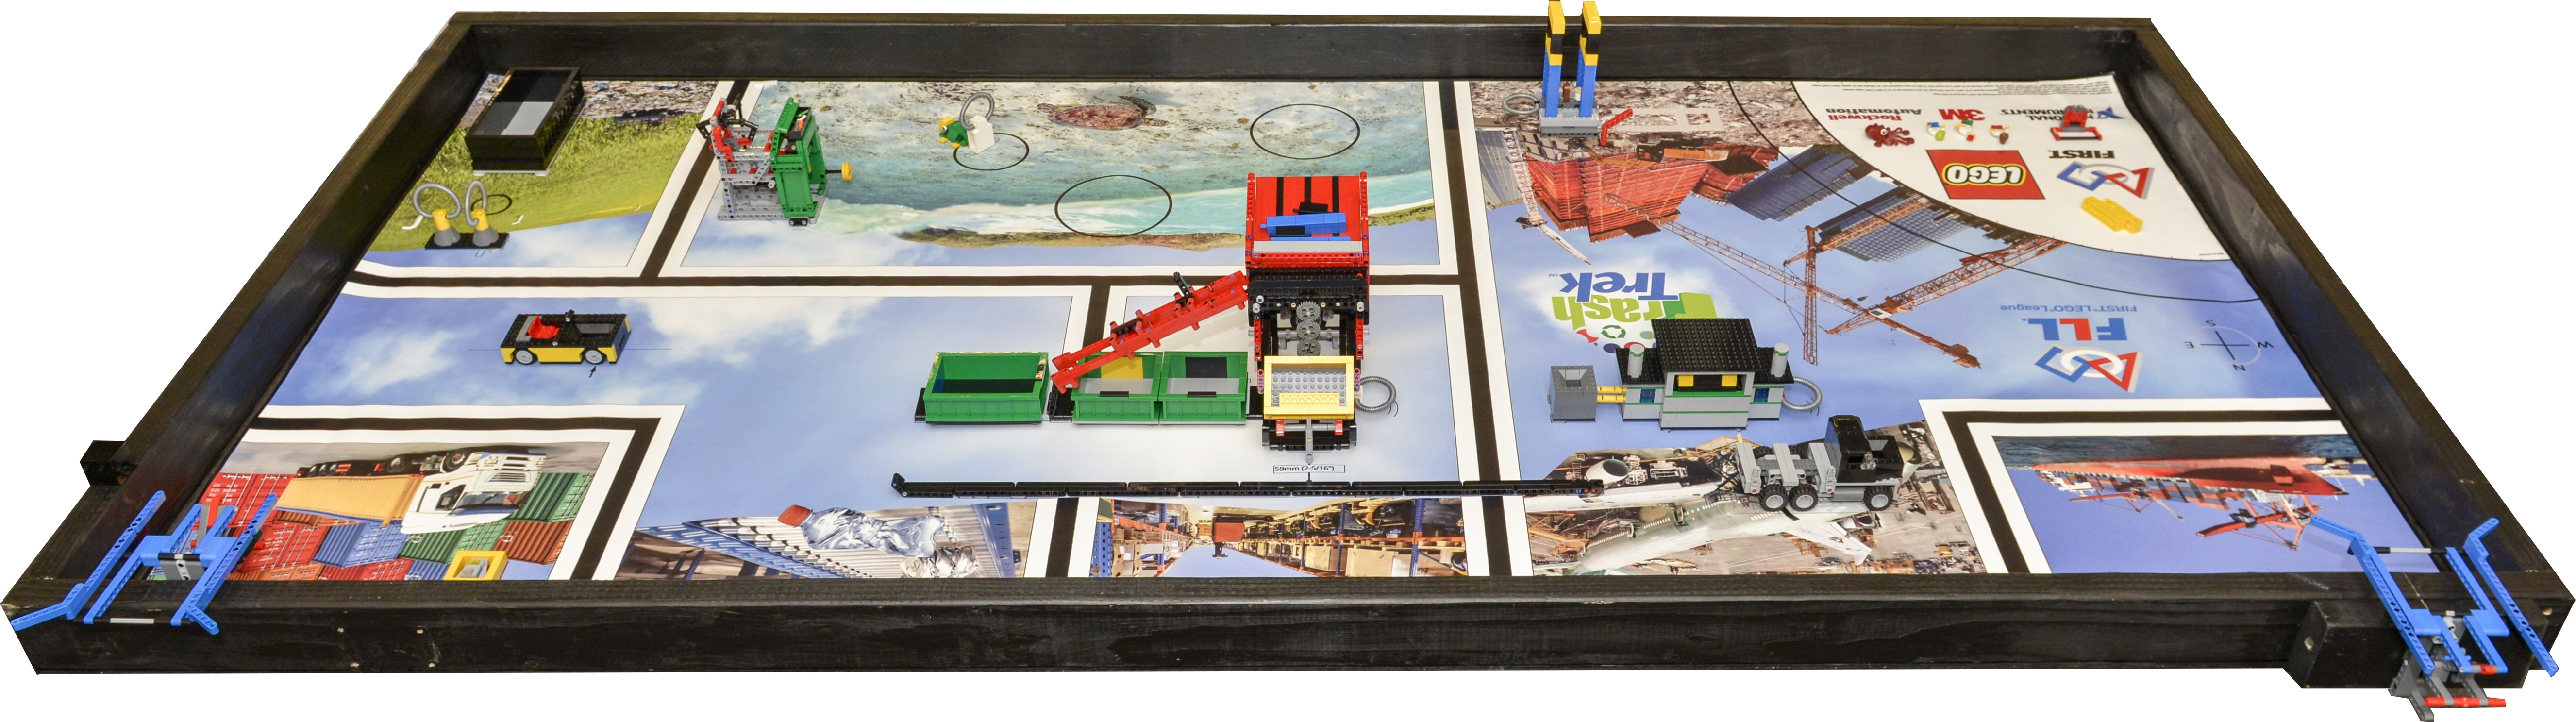 2015 fll challenge now available  u2013 central valley robotics